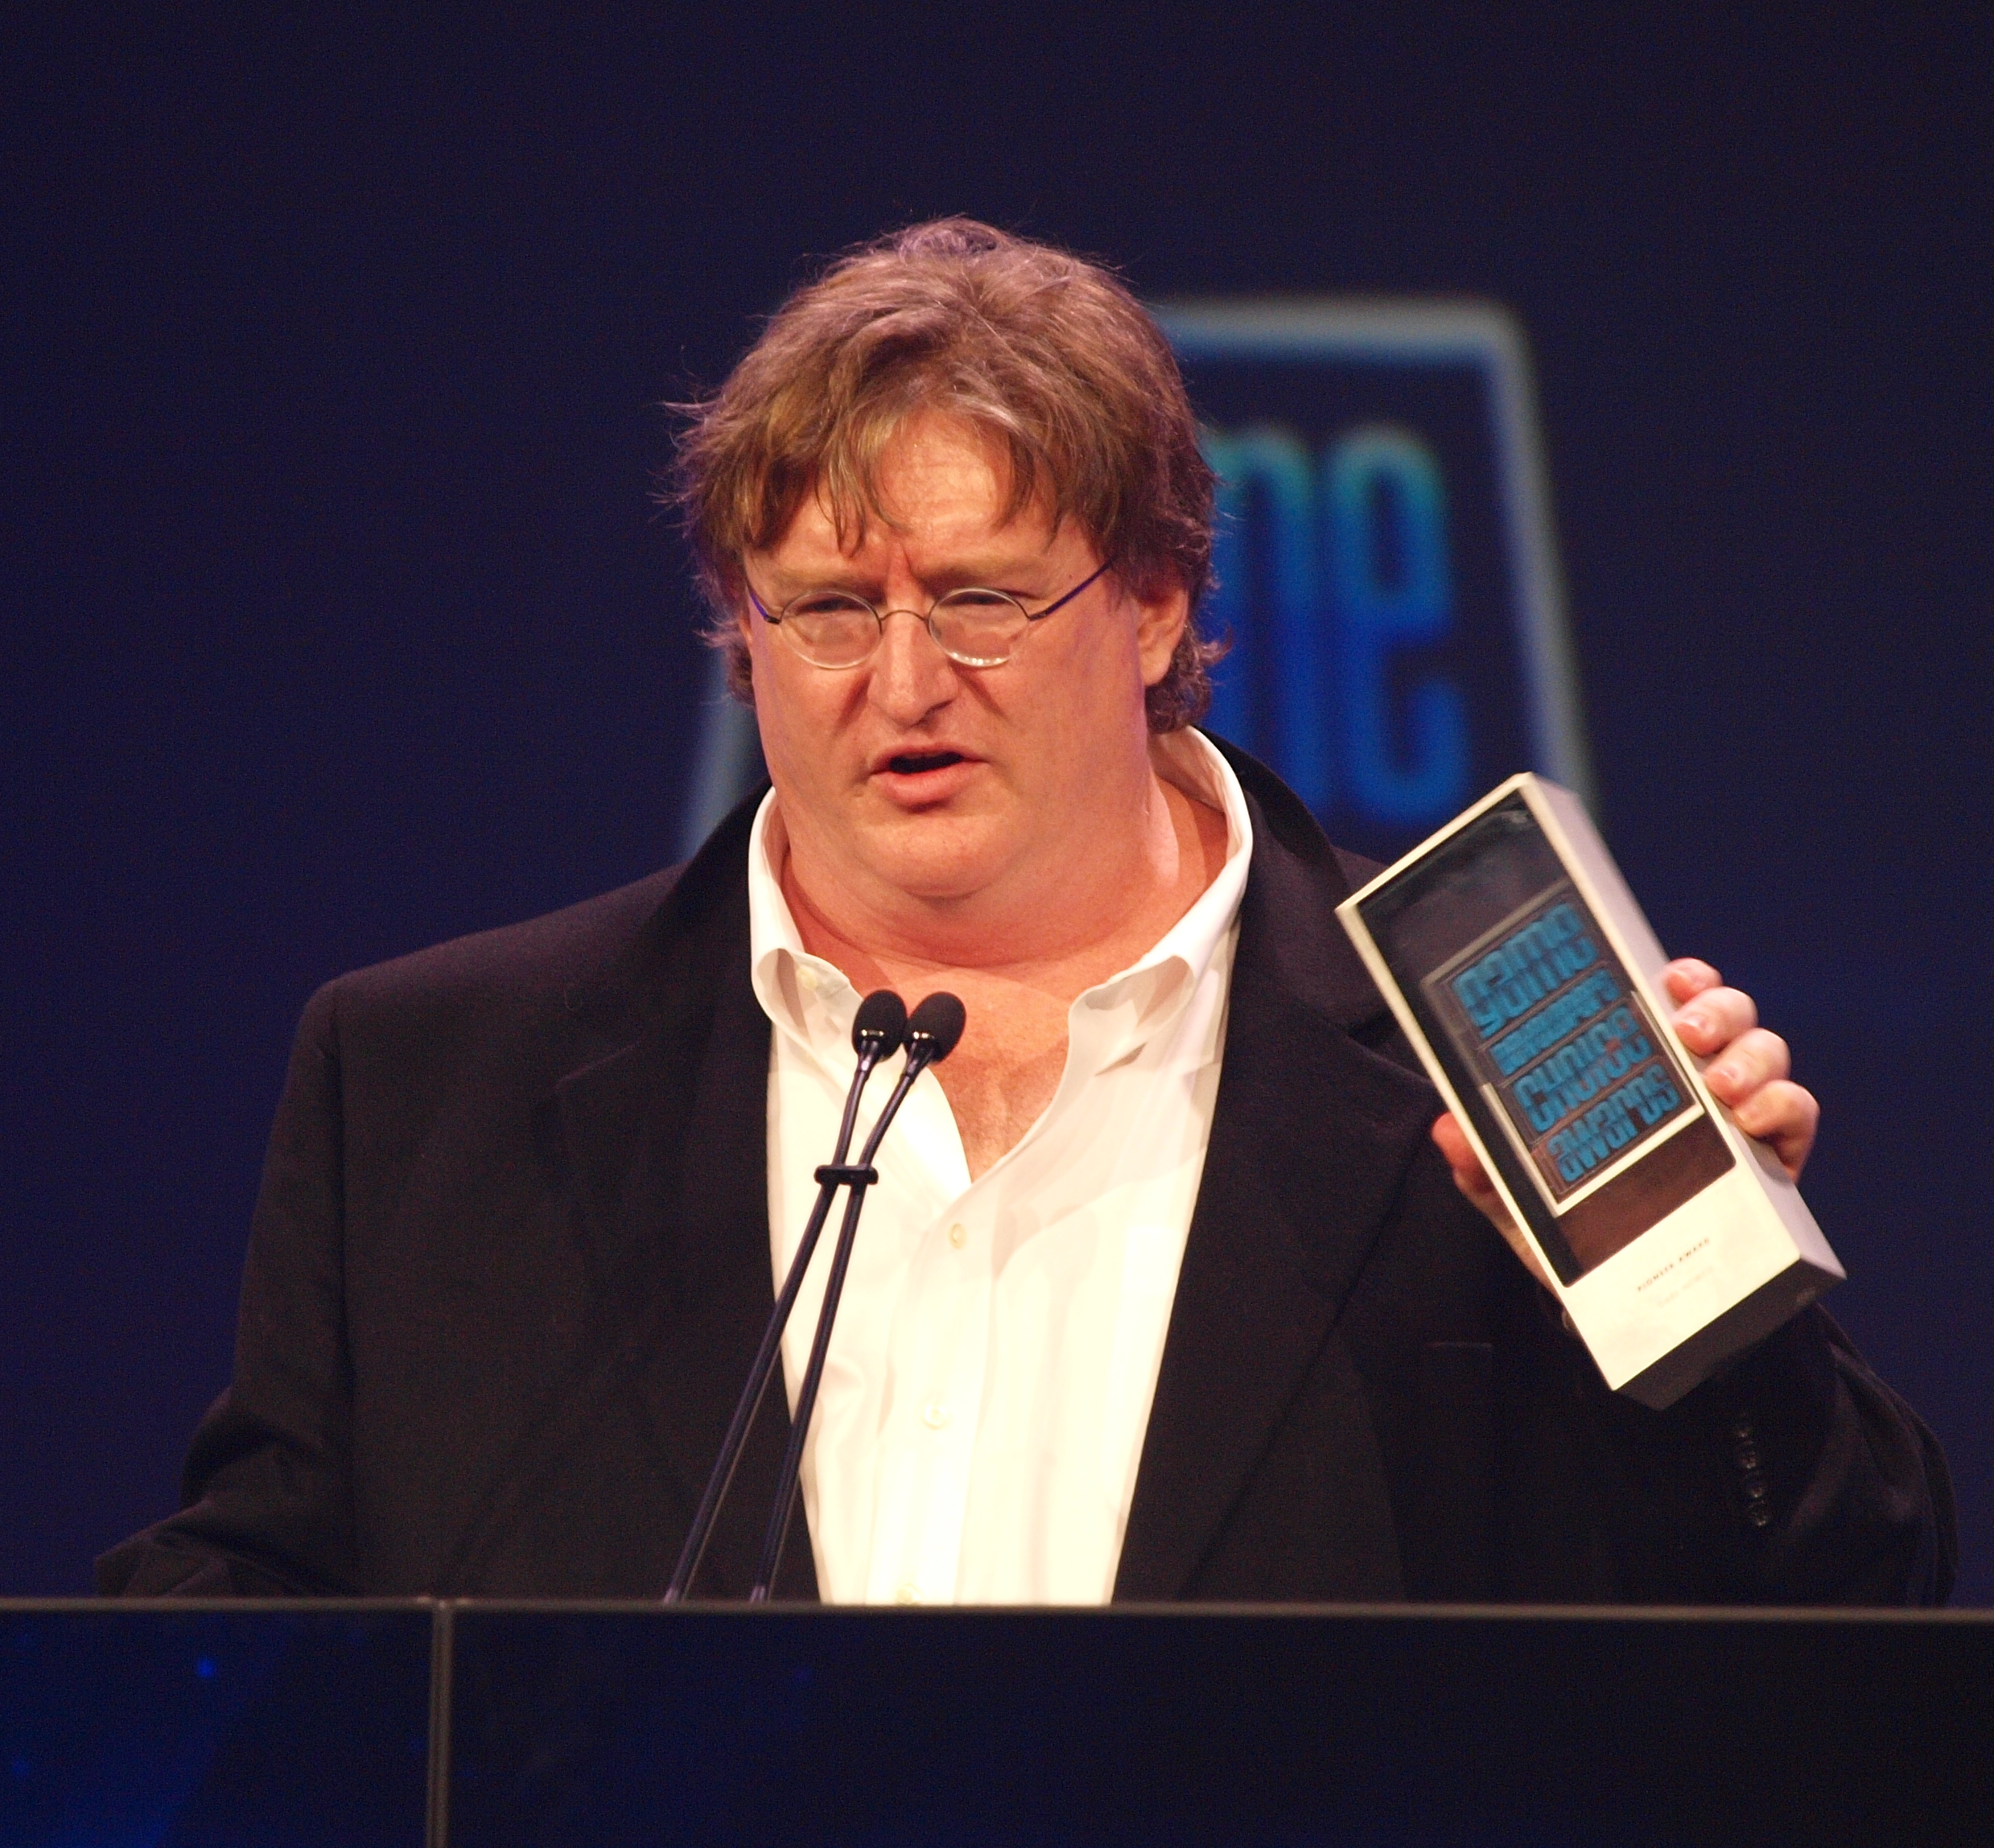 Gabe Newell at GDC in 2010, image from Wikipedia